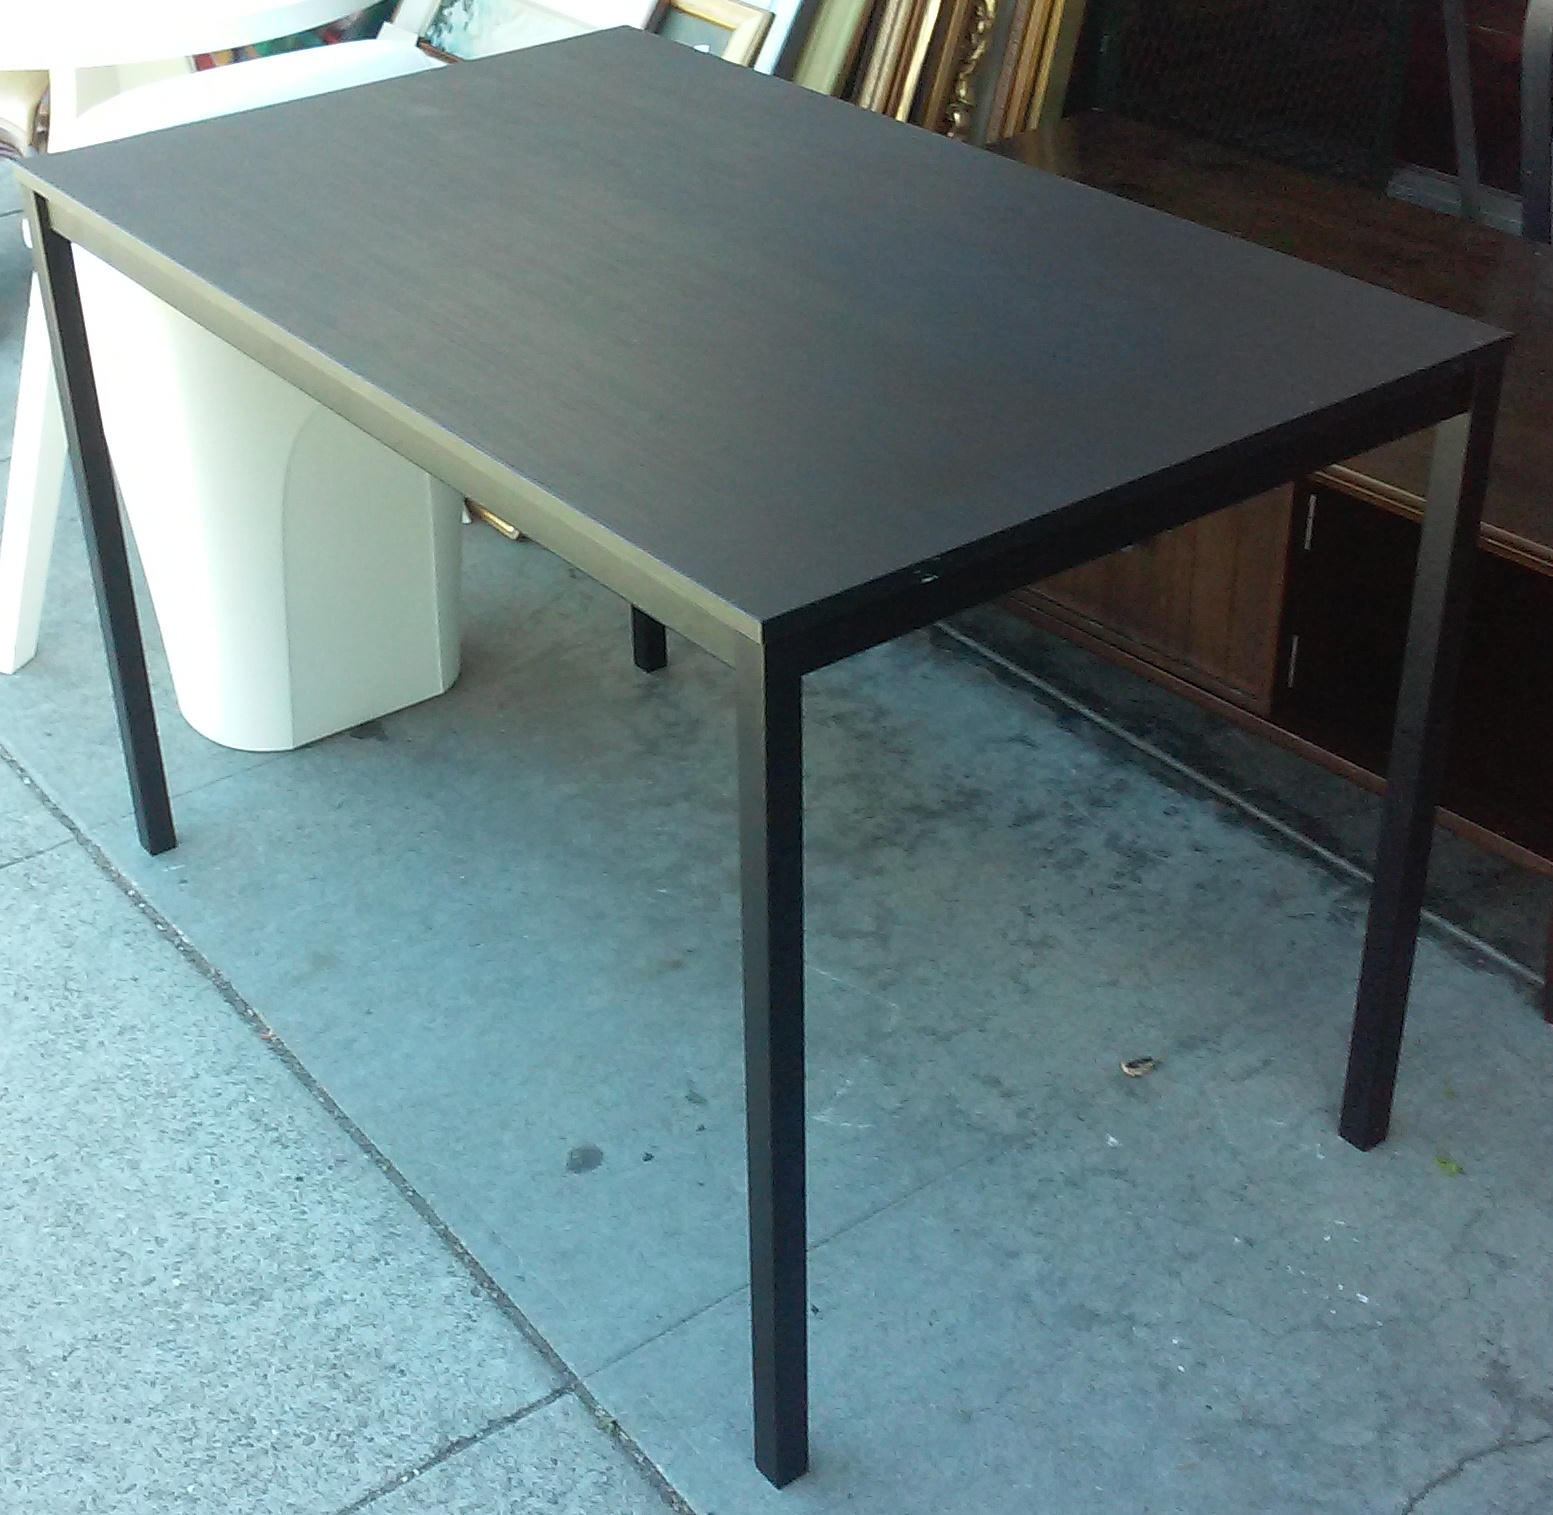 Kitchen Table Democracy: UHURU FURNITURE & COLLECTIBLES: SOLD CLEARANCE! #6050